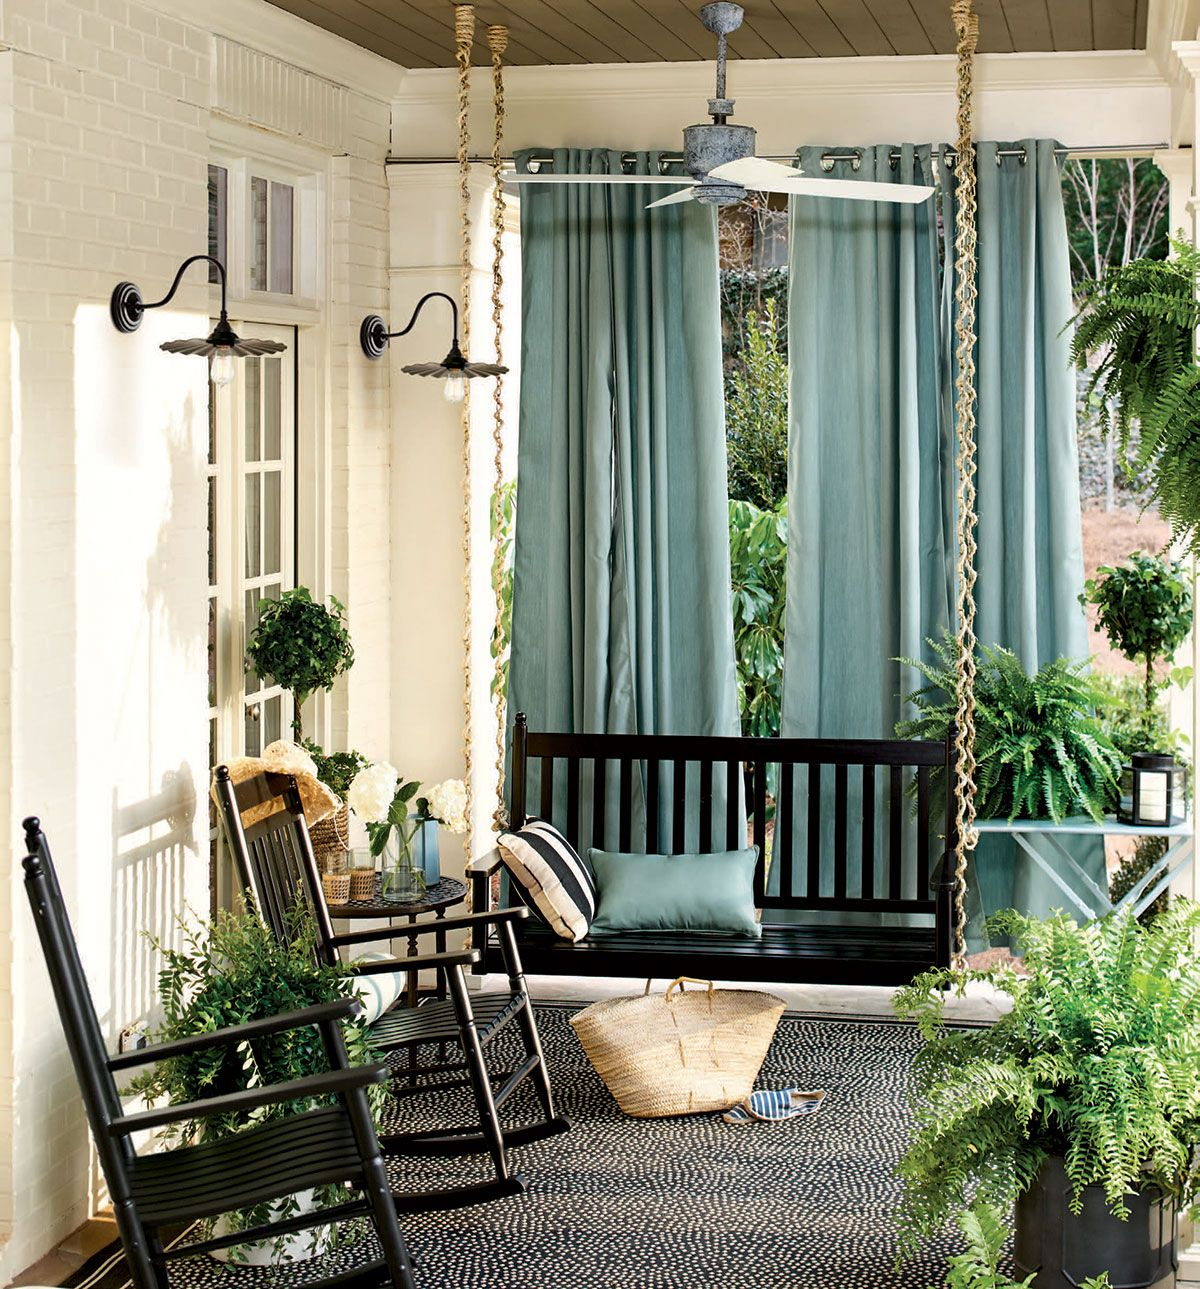 Outdoor Spaces Decorating Ideas